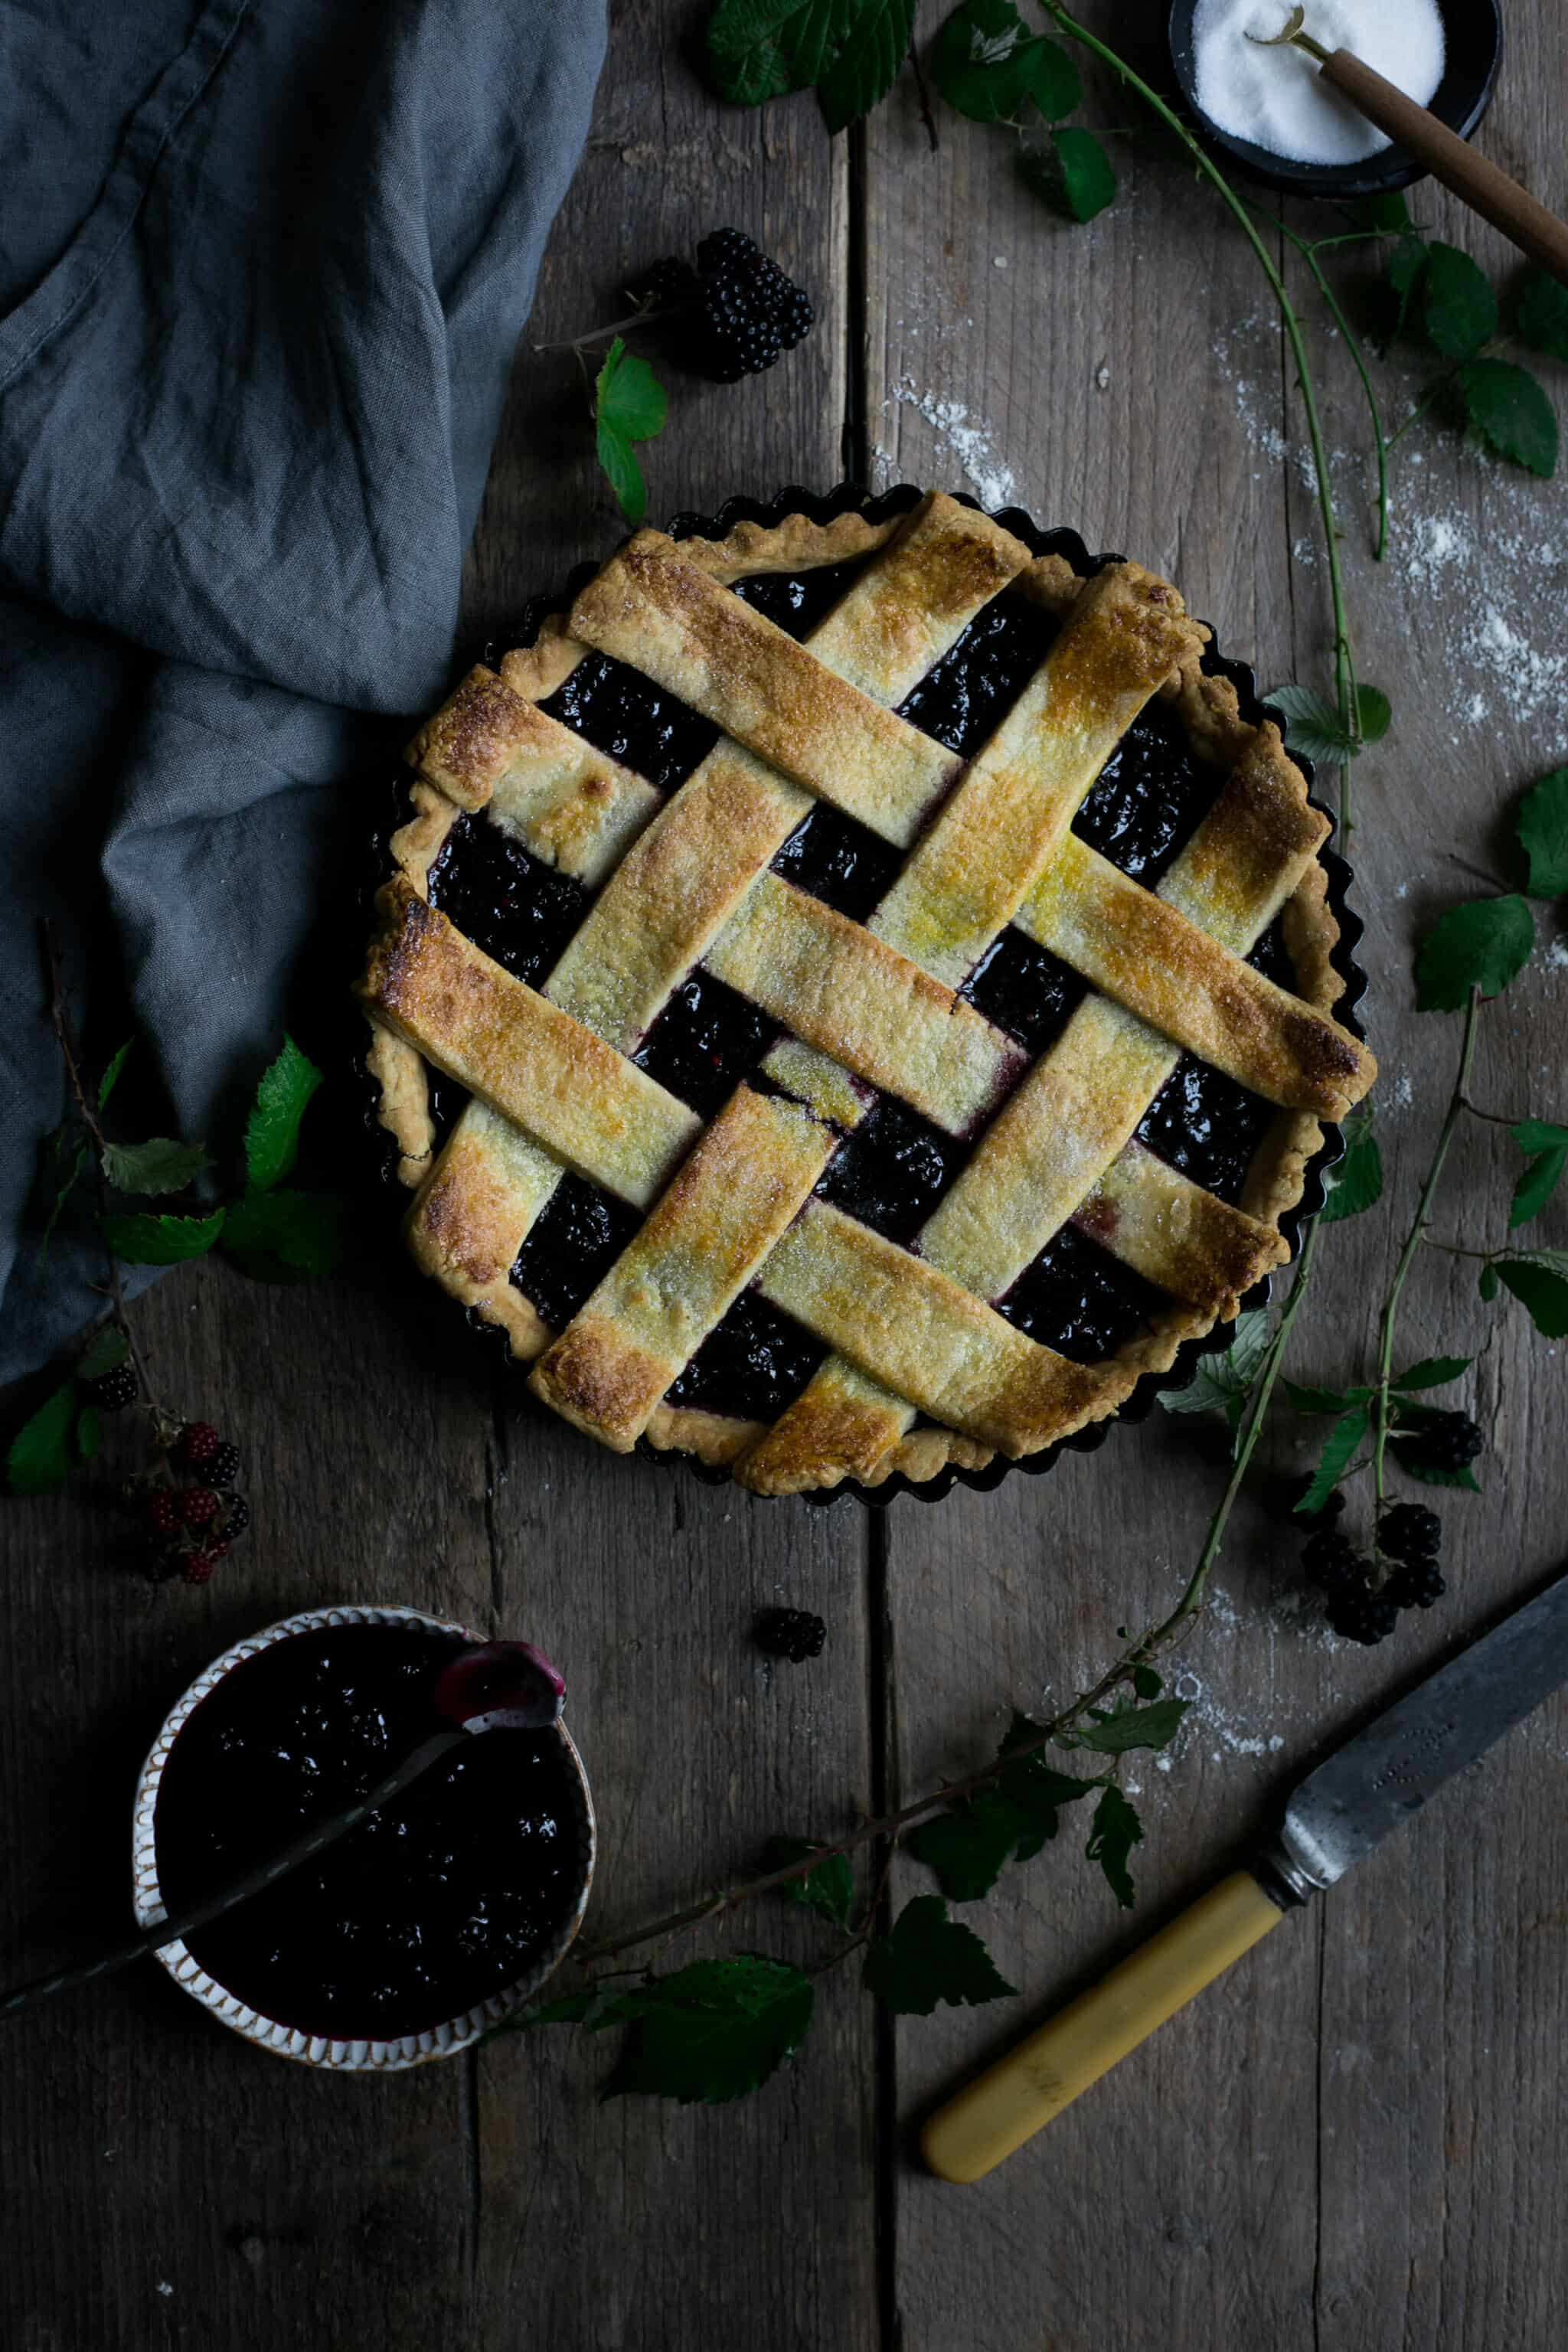 Homemade blackberry and lattice tart | via @annabanana.co